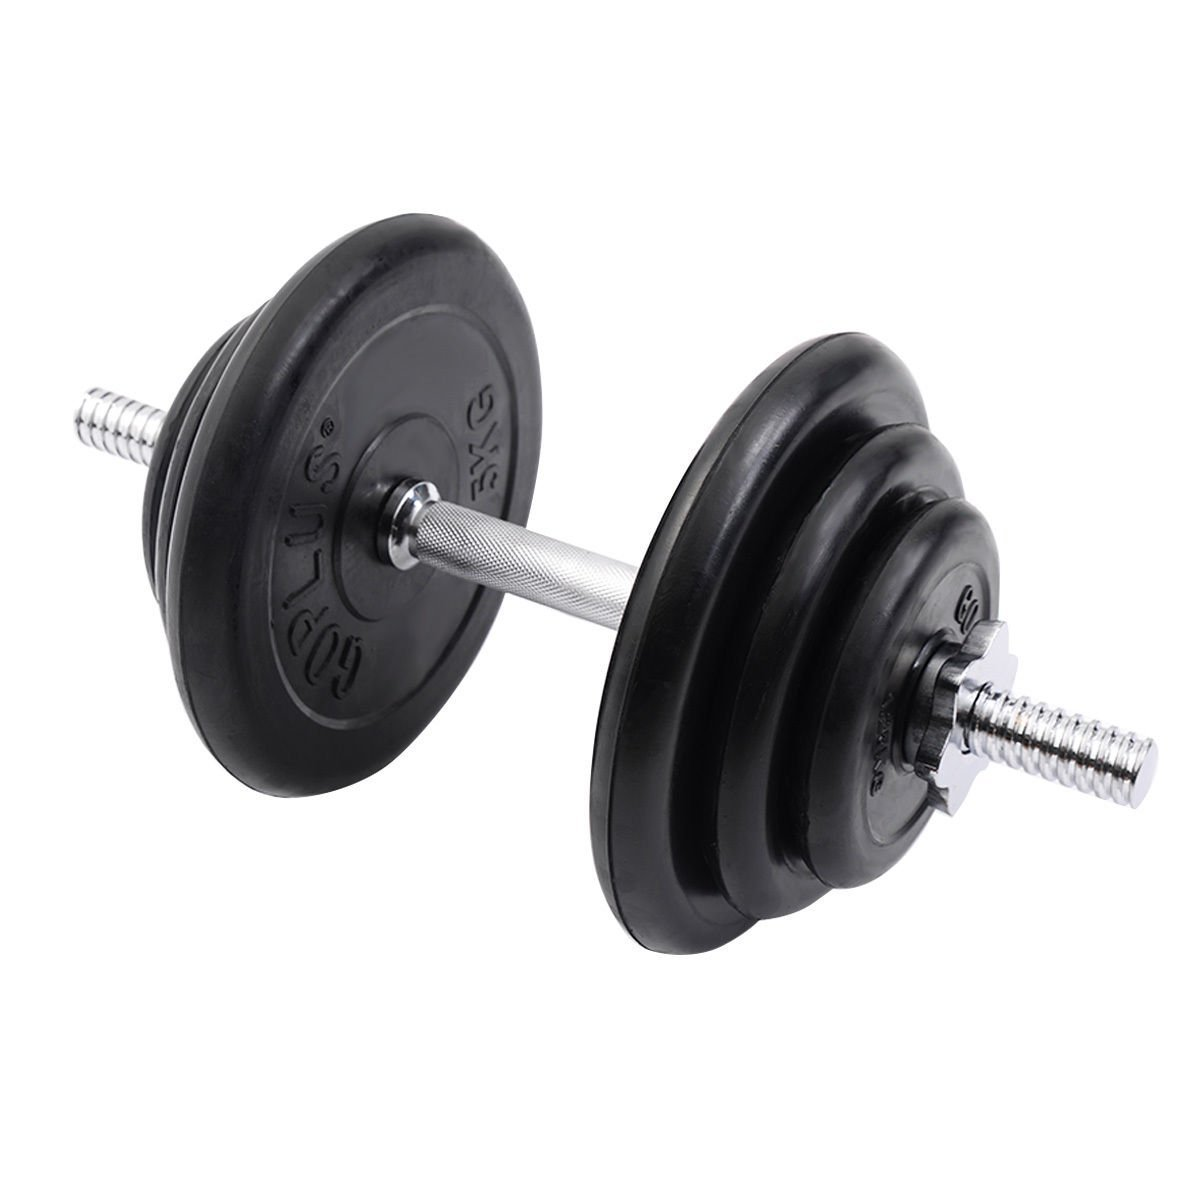 Giantex Weight Dumbbell Set 44 Lb Adjustable Cap Gym Barbell Plates Body Workout